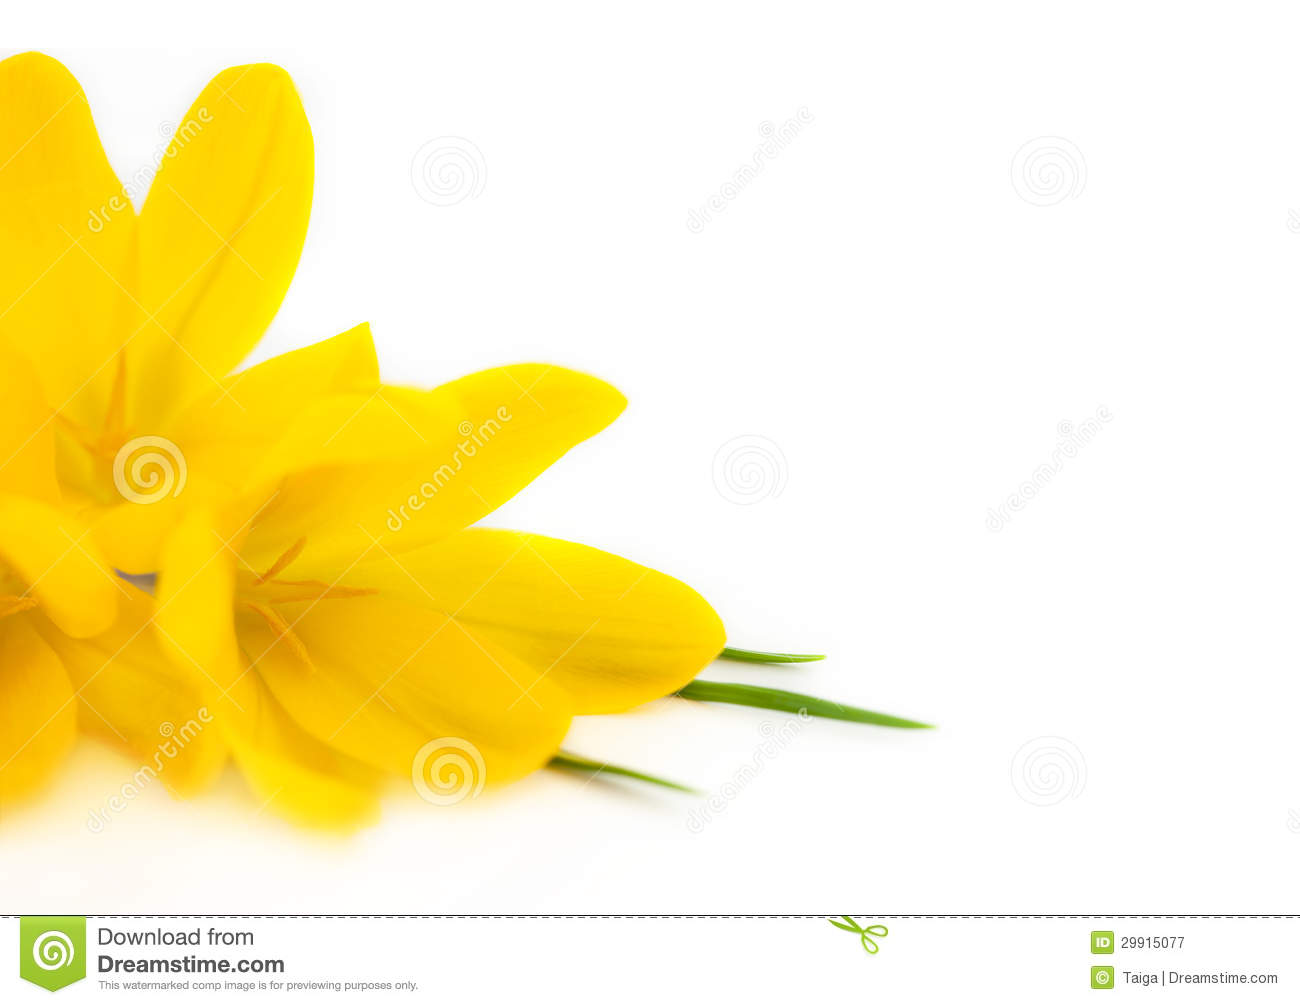 Yellow Crocus / Spring Flowers Royalty Free Stock Photography.